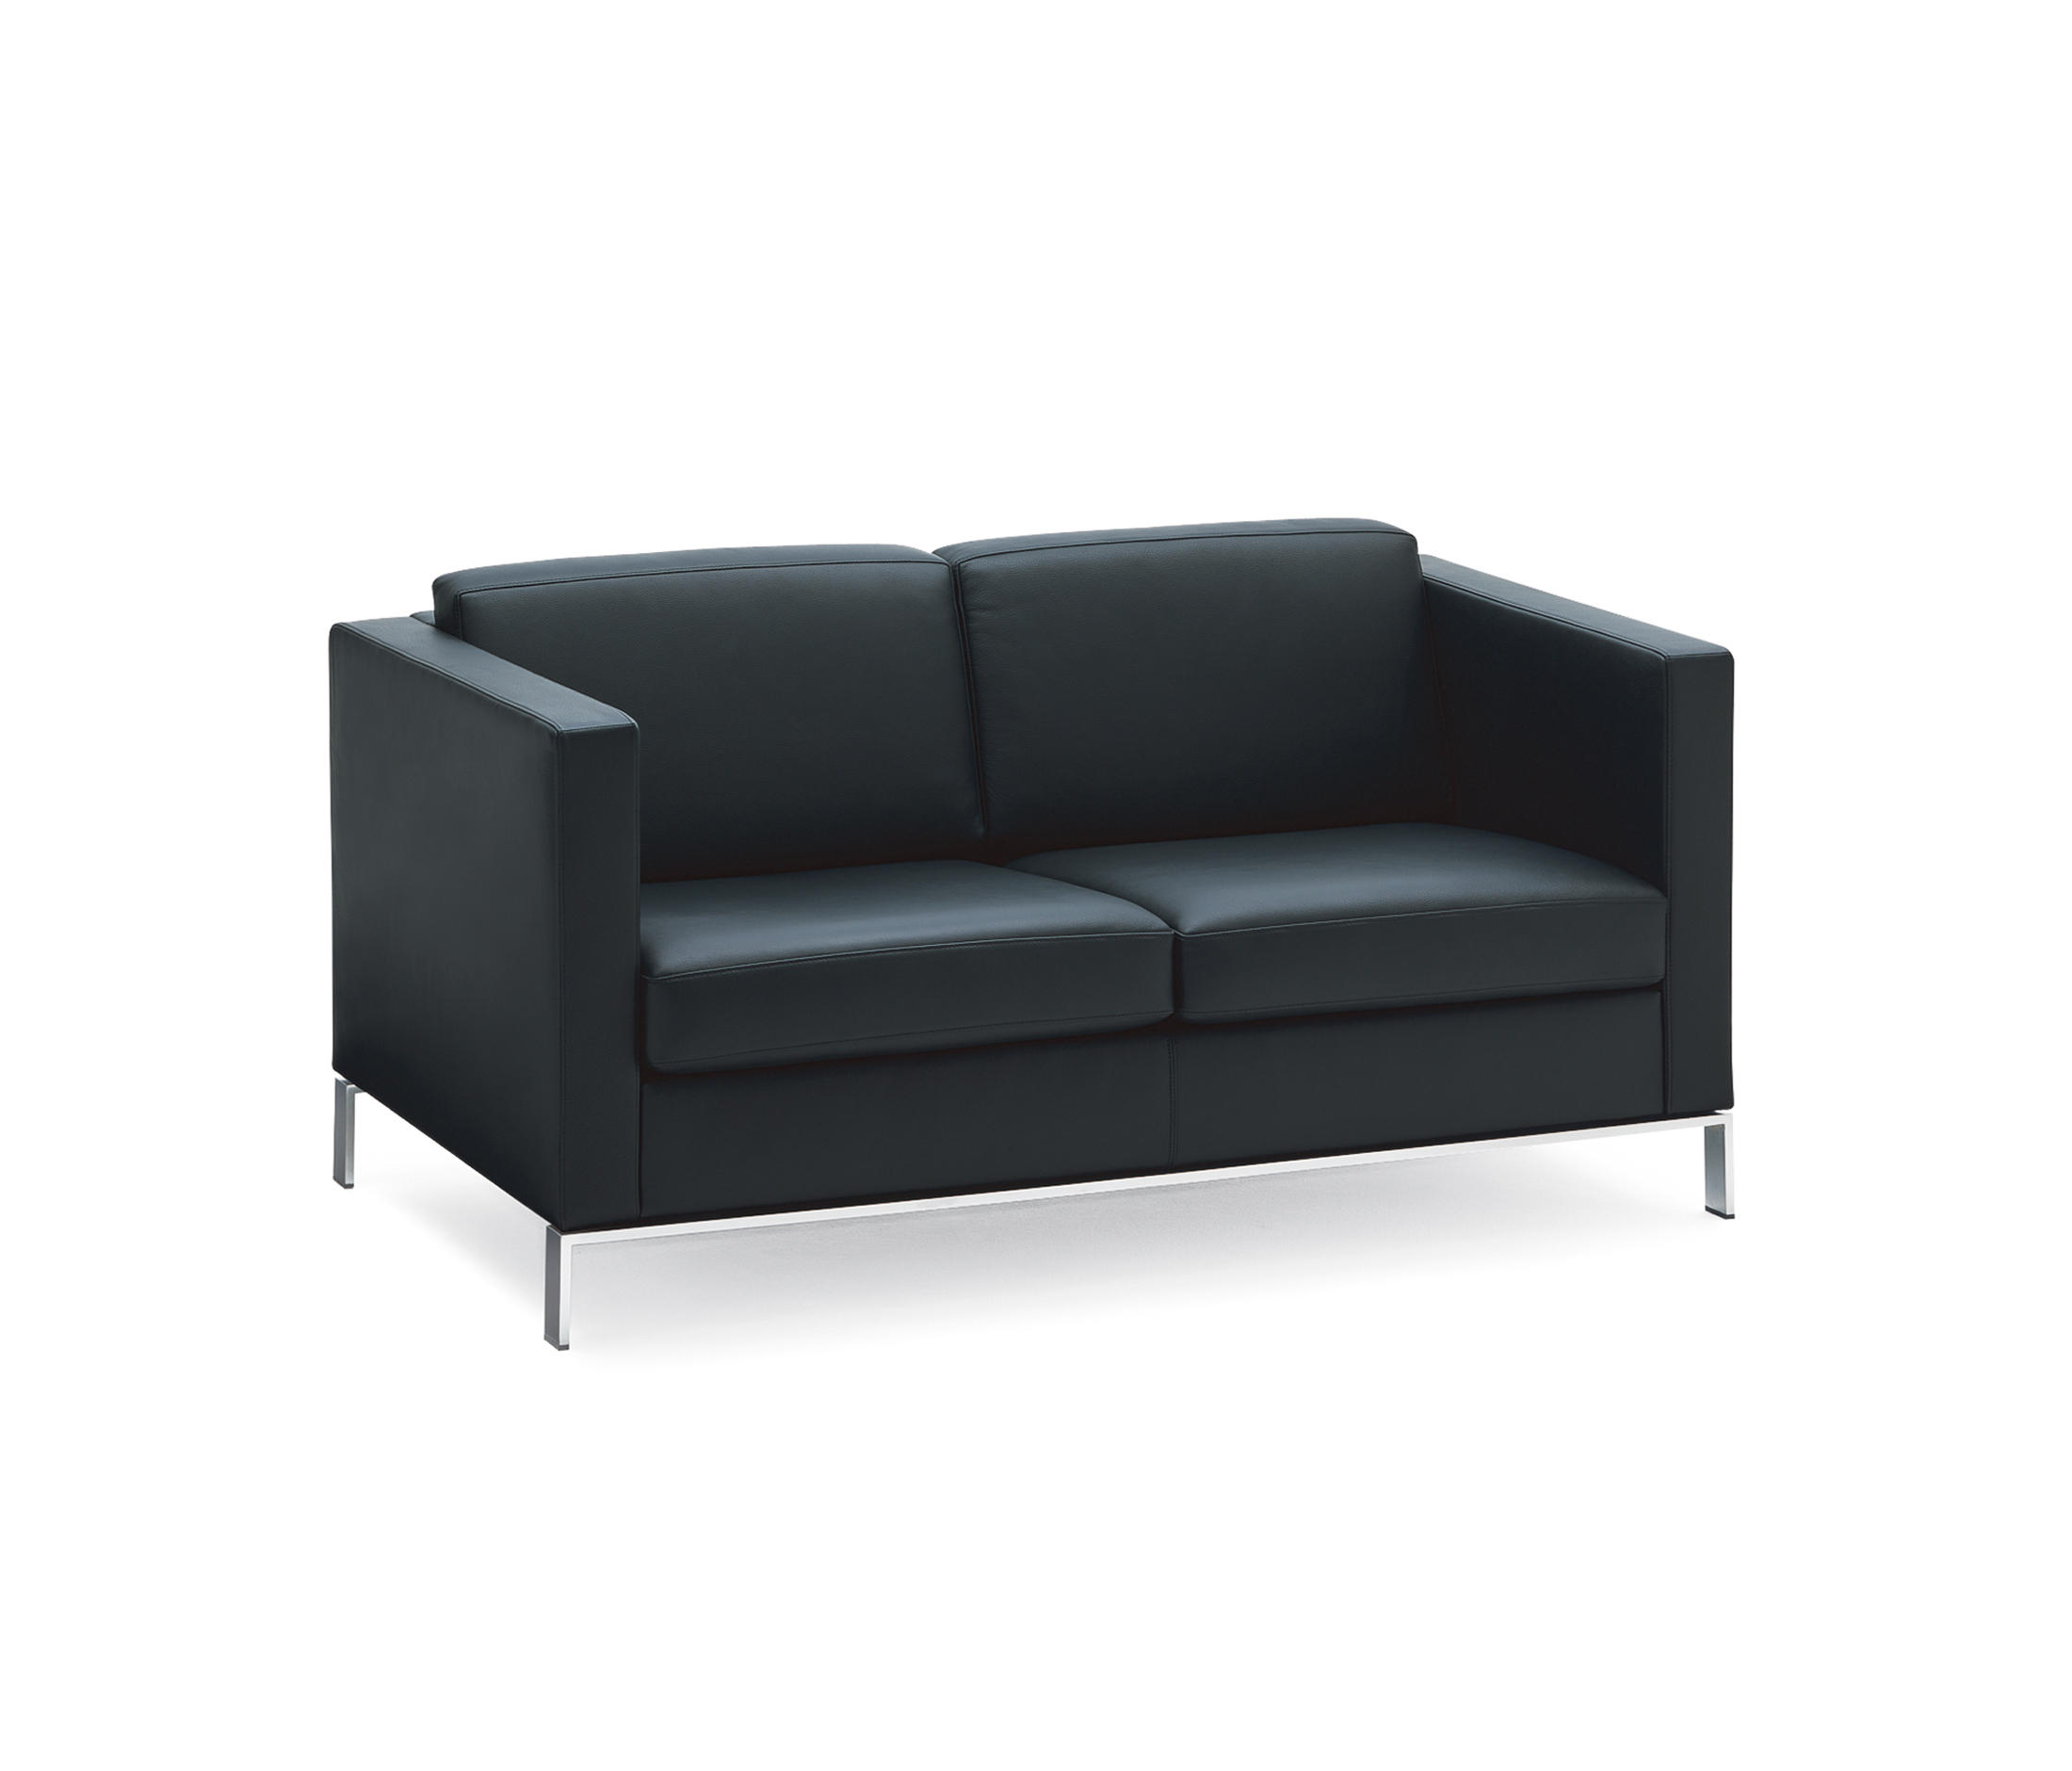 Foster 500 sofa canap s d 39 attente de walter knoll for Canape walter but